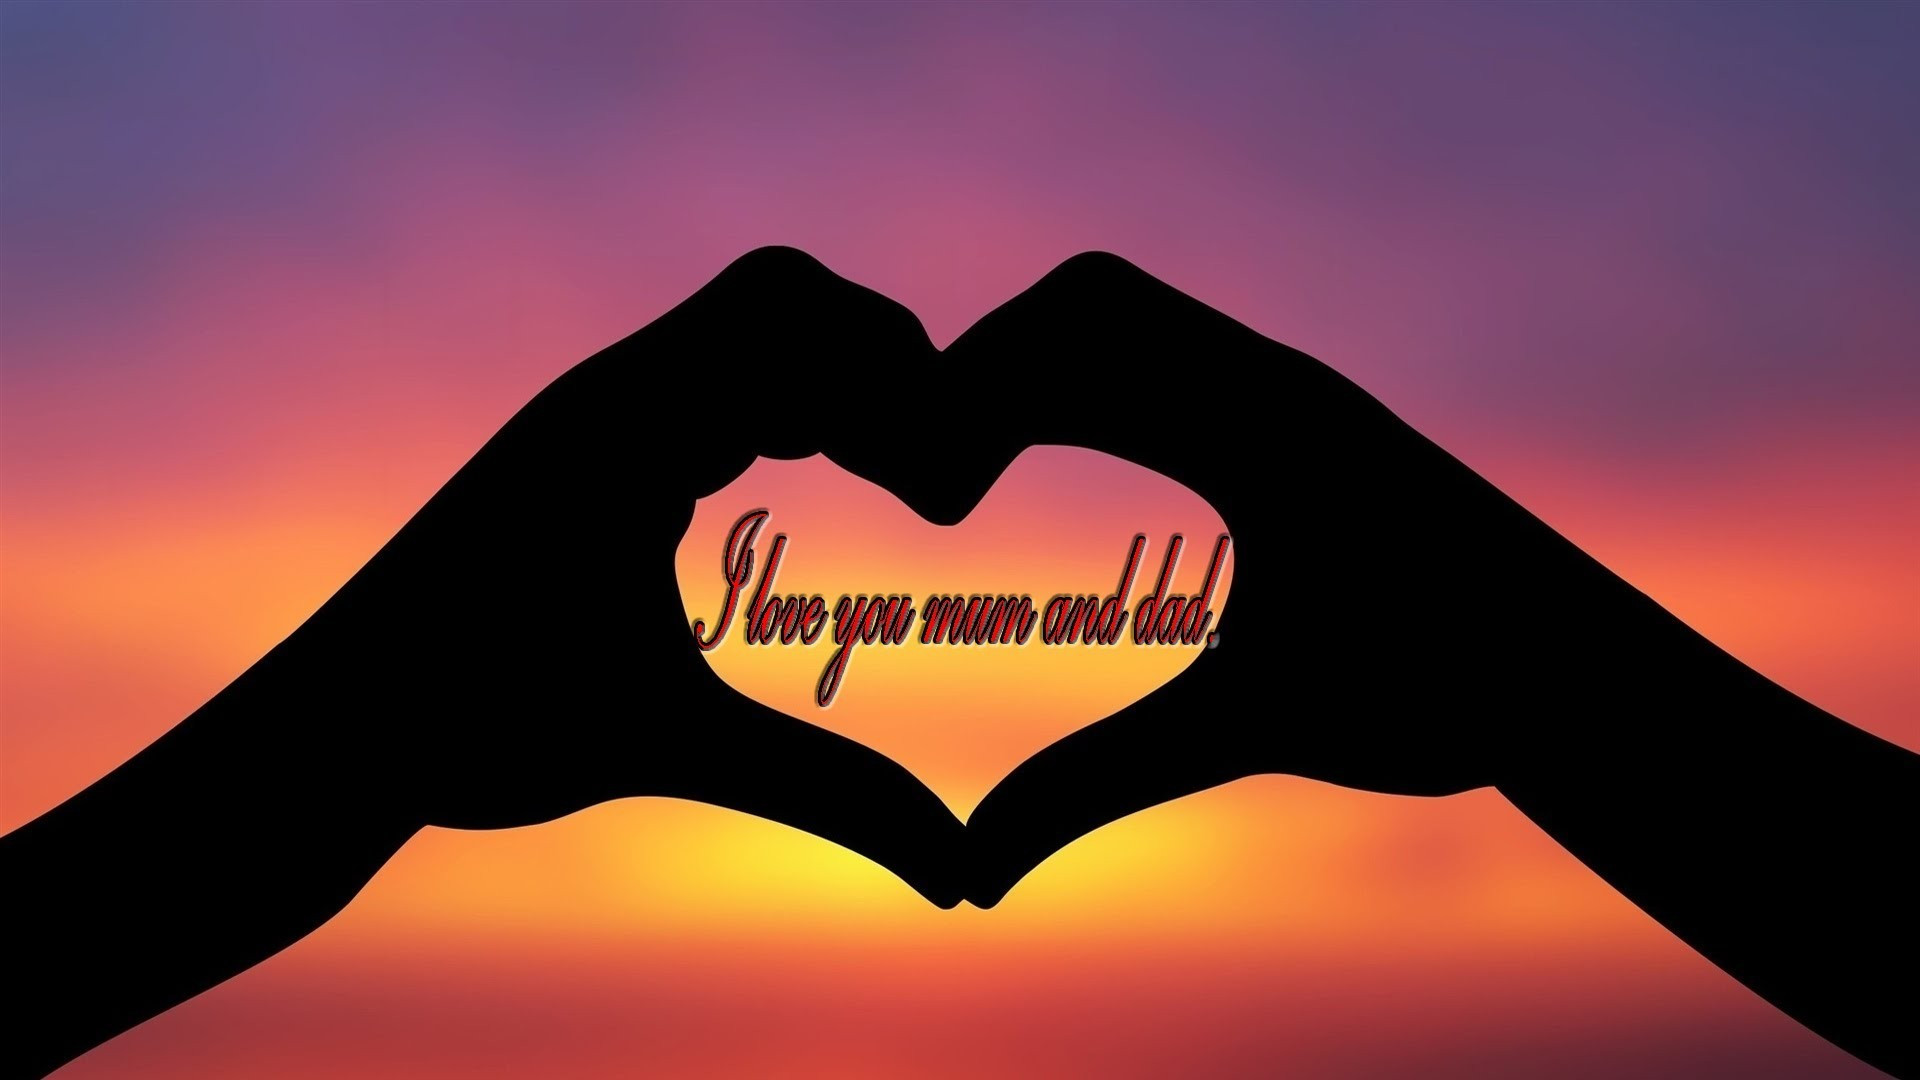 I Love My Mom Wallpaper 69 pictures 1920x1080